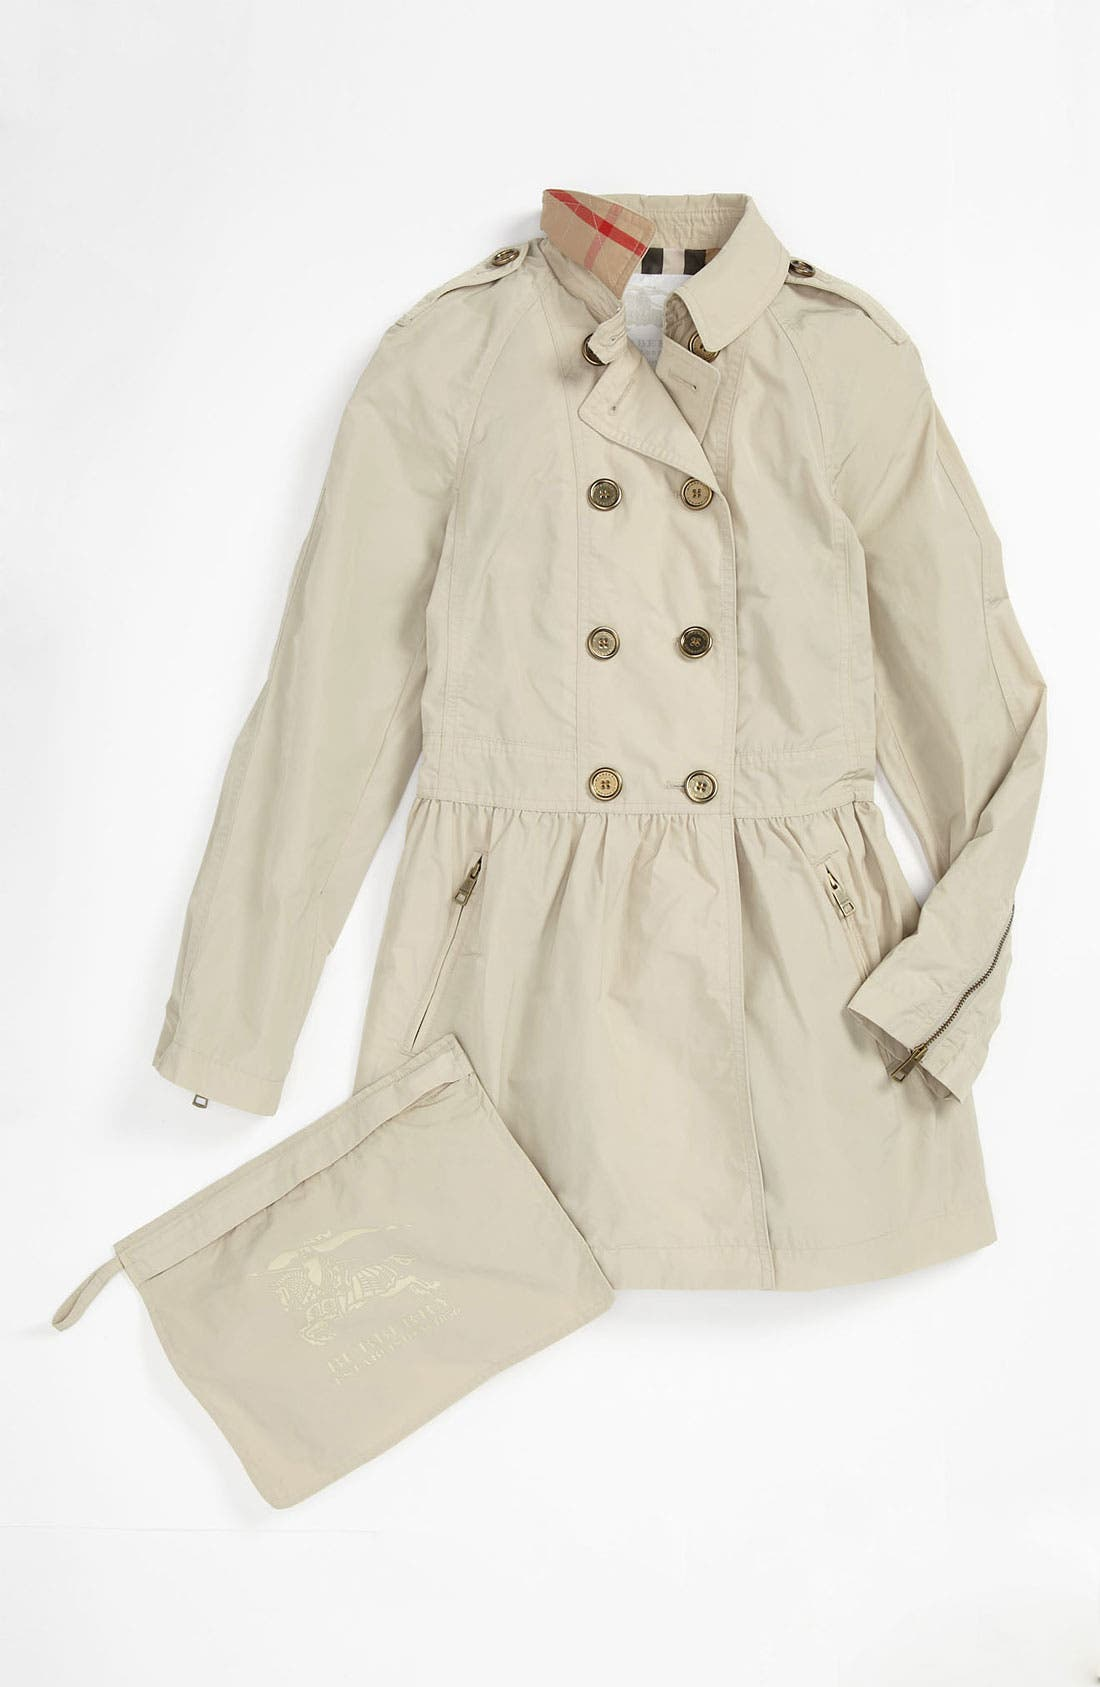 Main Image - Burberry 'Mini Mantlebury' Double Breasted Trench Coat (Little Girls & Big Girls)